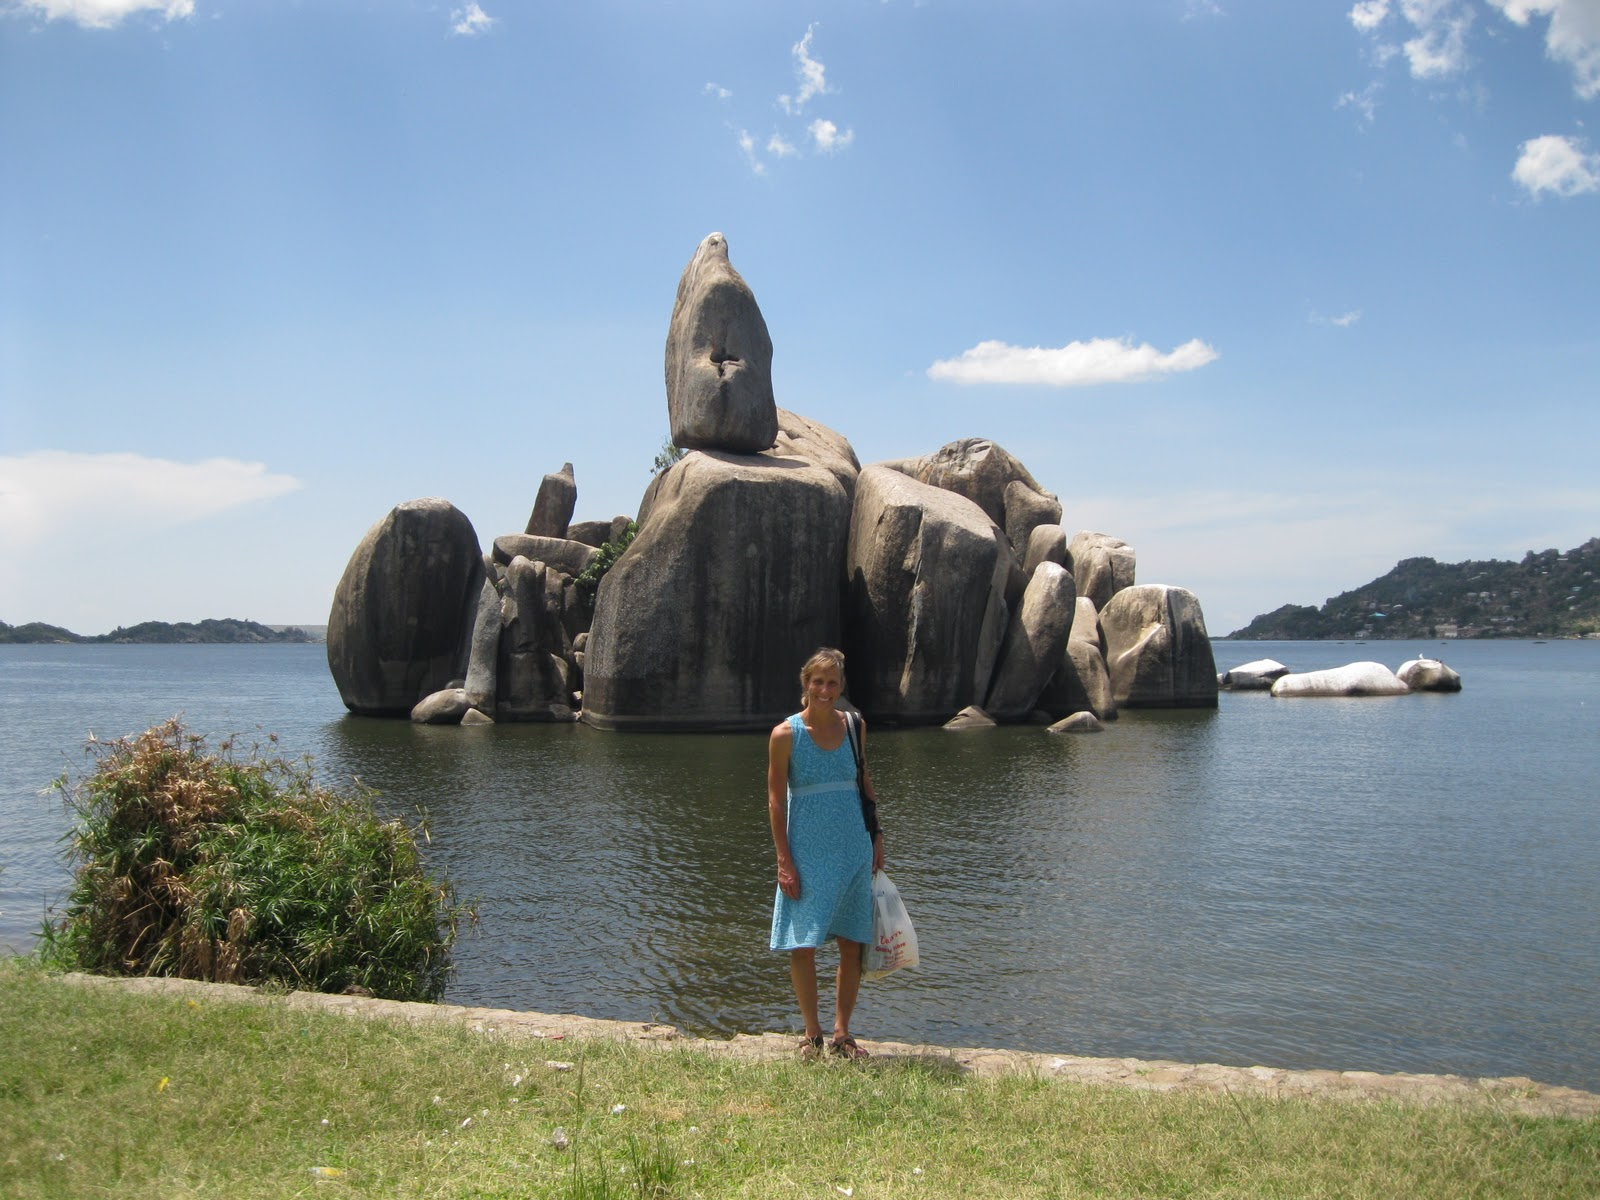 Bismarck Rock Mwanza, Journey to Mwanza, Tanzania: Pictures from Town and More!